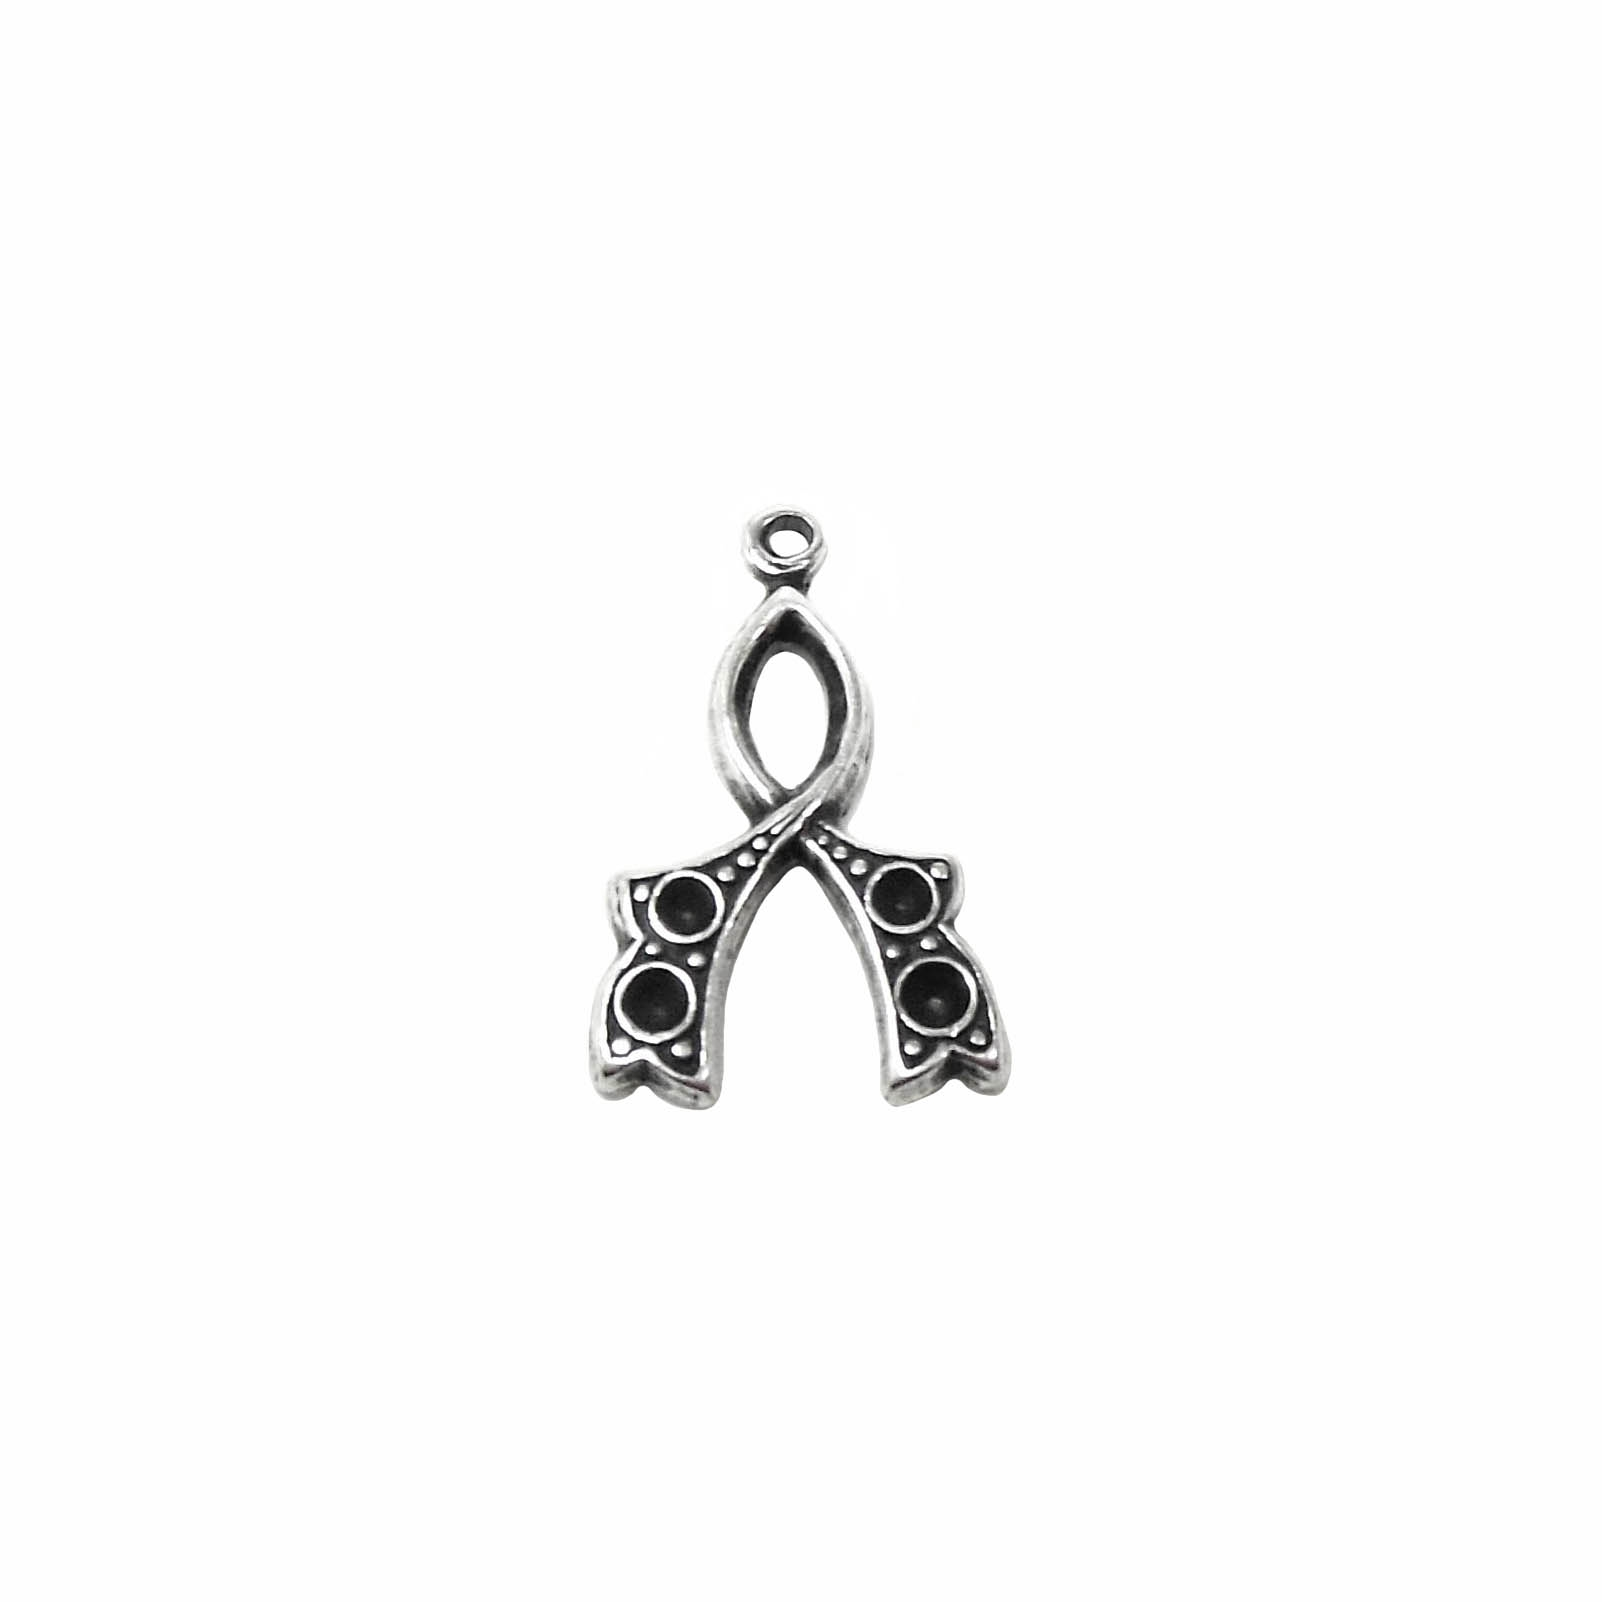 Wish Bone Charm, Silverware Silverplate, 16 x 12mm